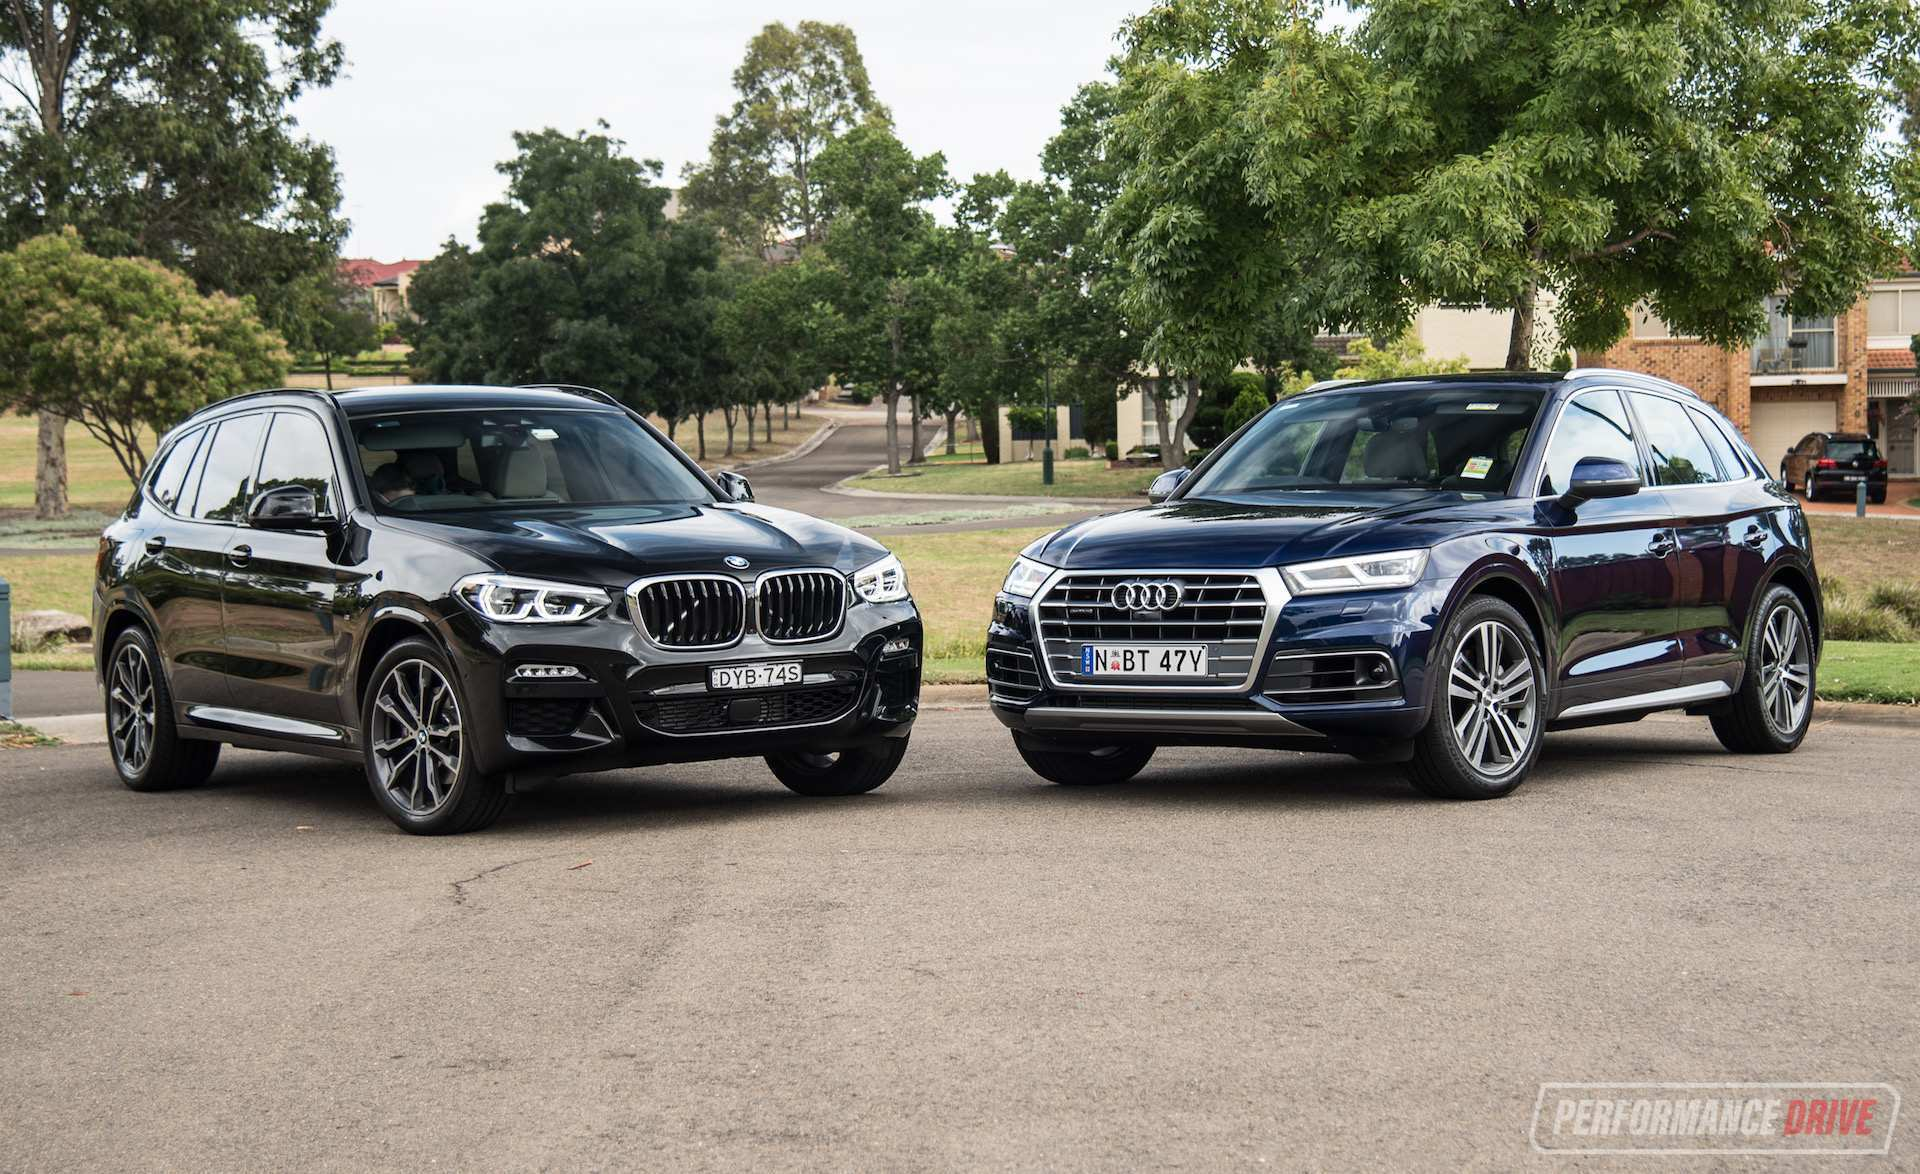 70 All New 2019 Audi Q5 Suv Prices